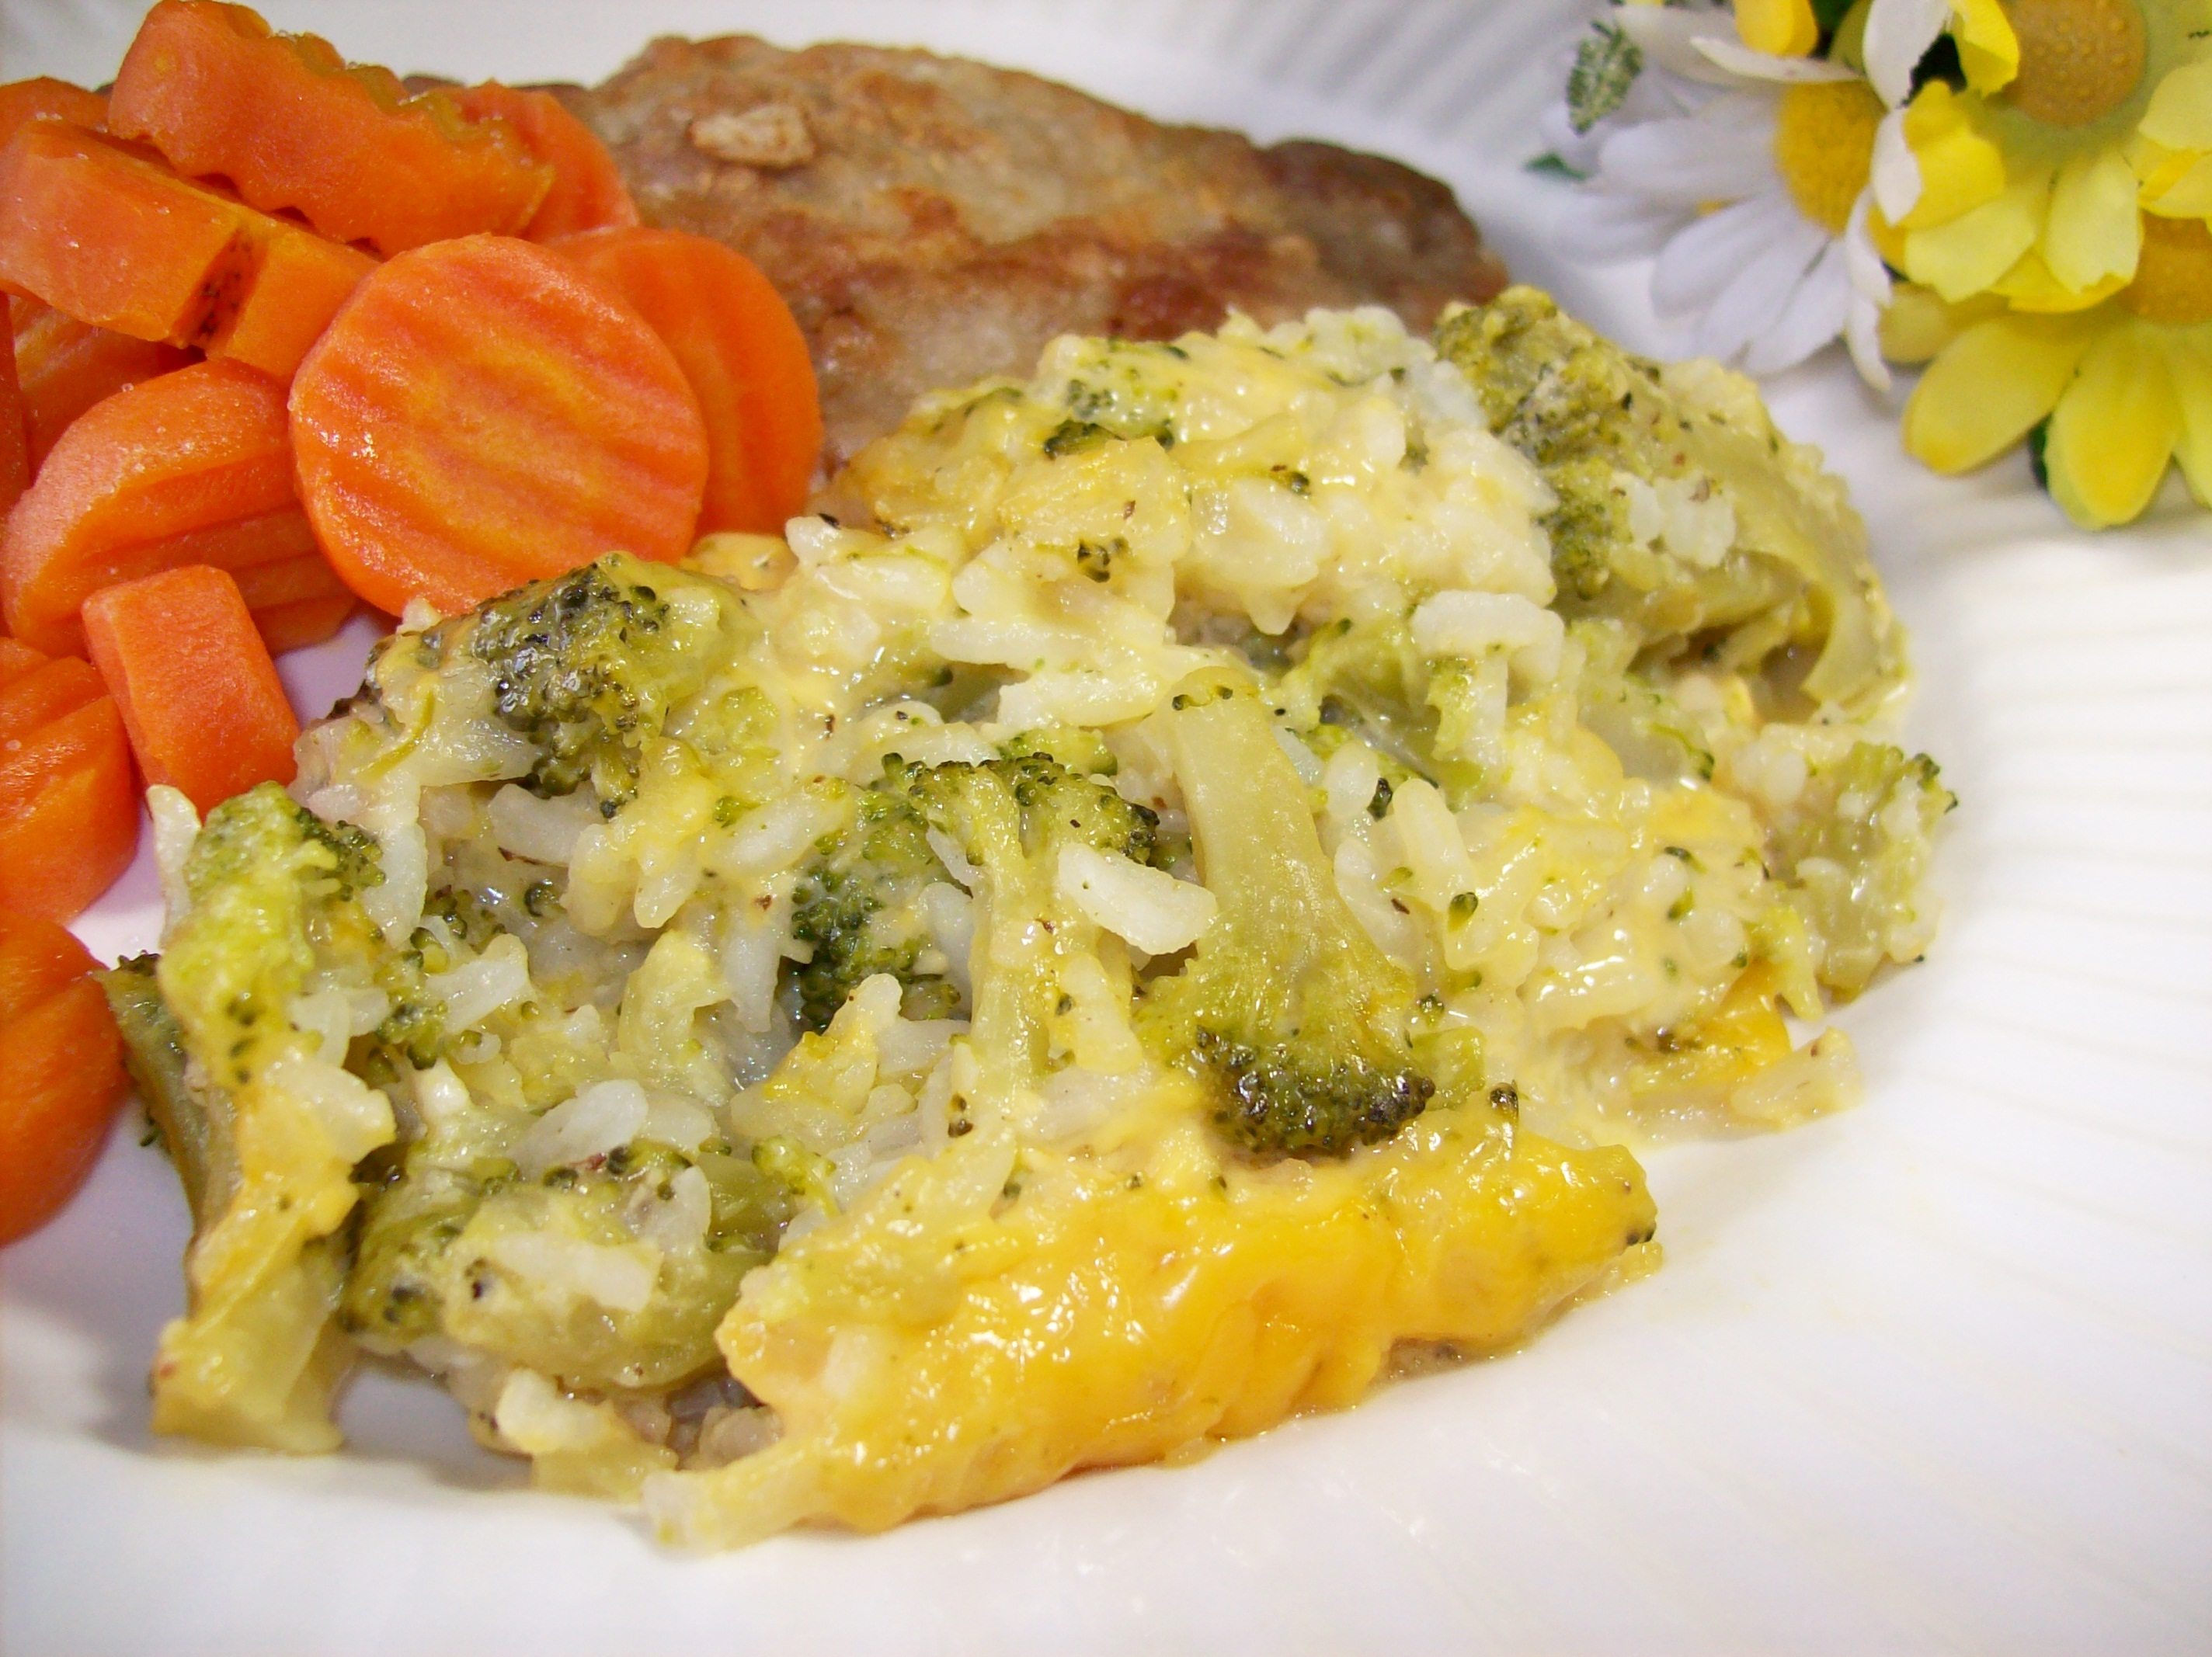 Healthy Broccoli Rice Casserole Photos And Broccoli Rice Casserole Recipes Genius Kitchen